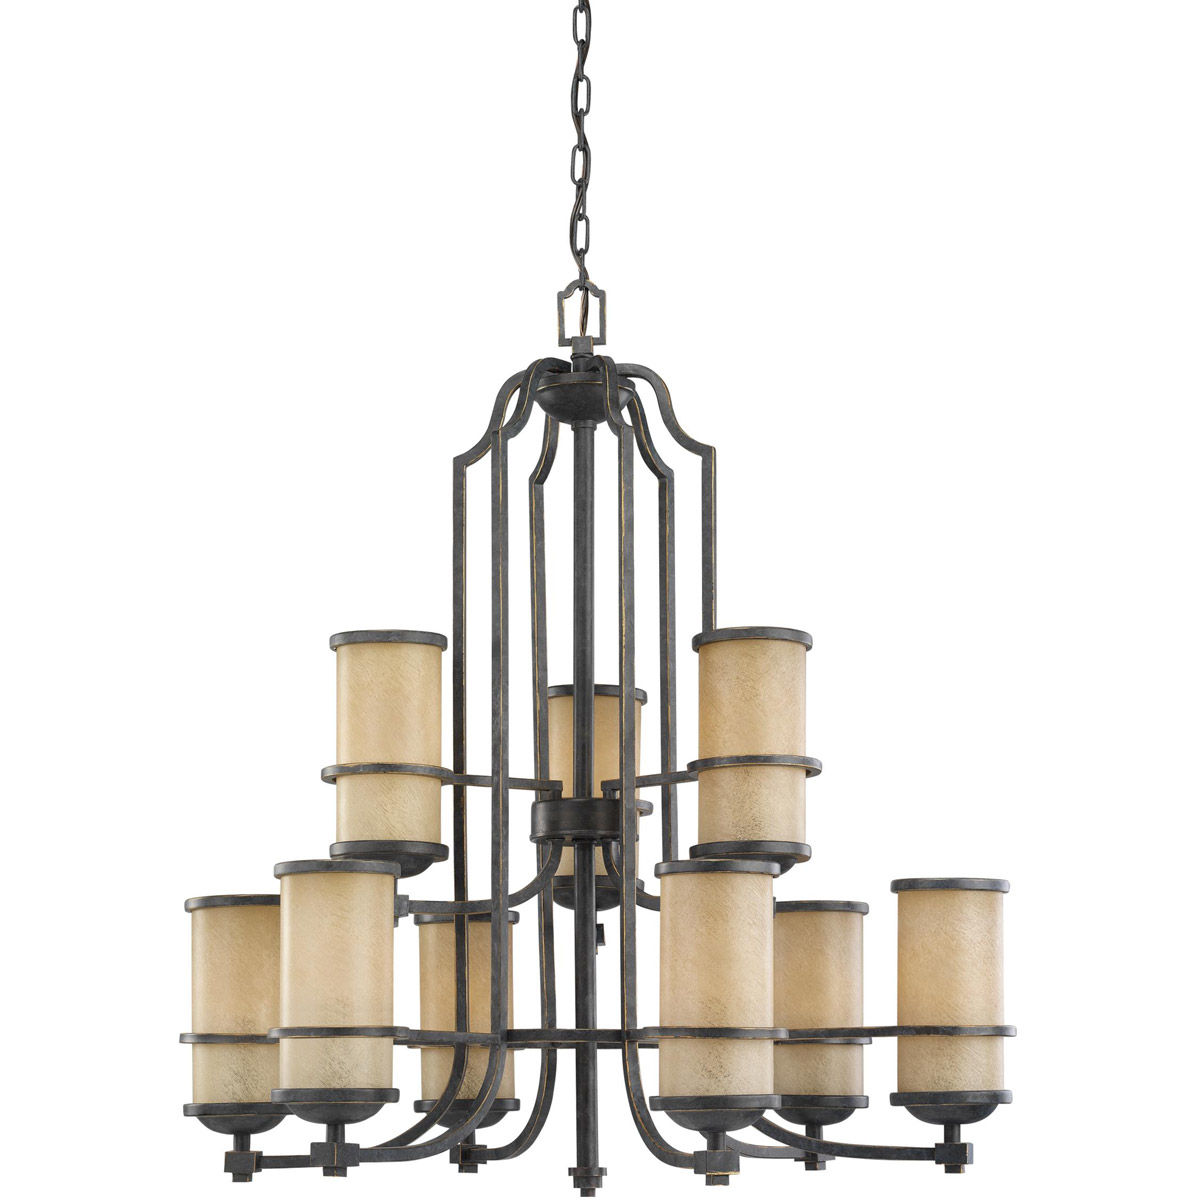 Sea Gull Lighting Roslyn 9 Light Chandelier in Flemish Bronze 31522-845 photo